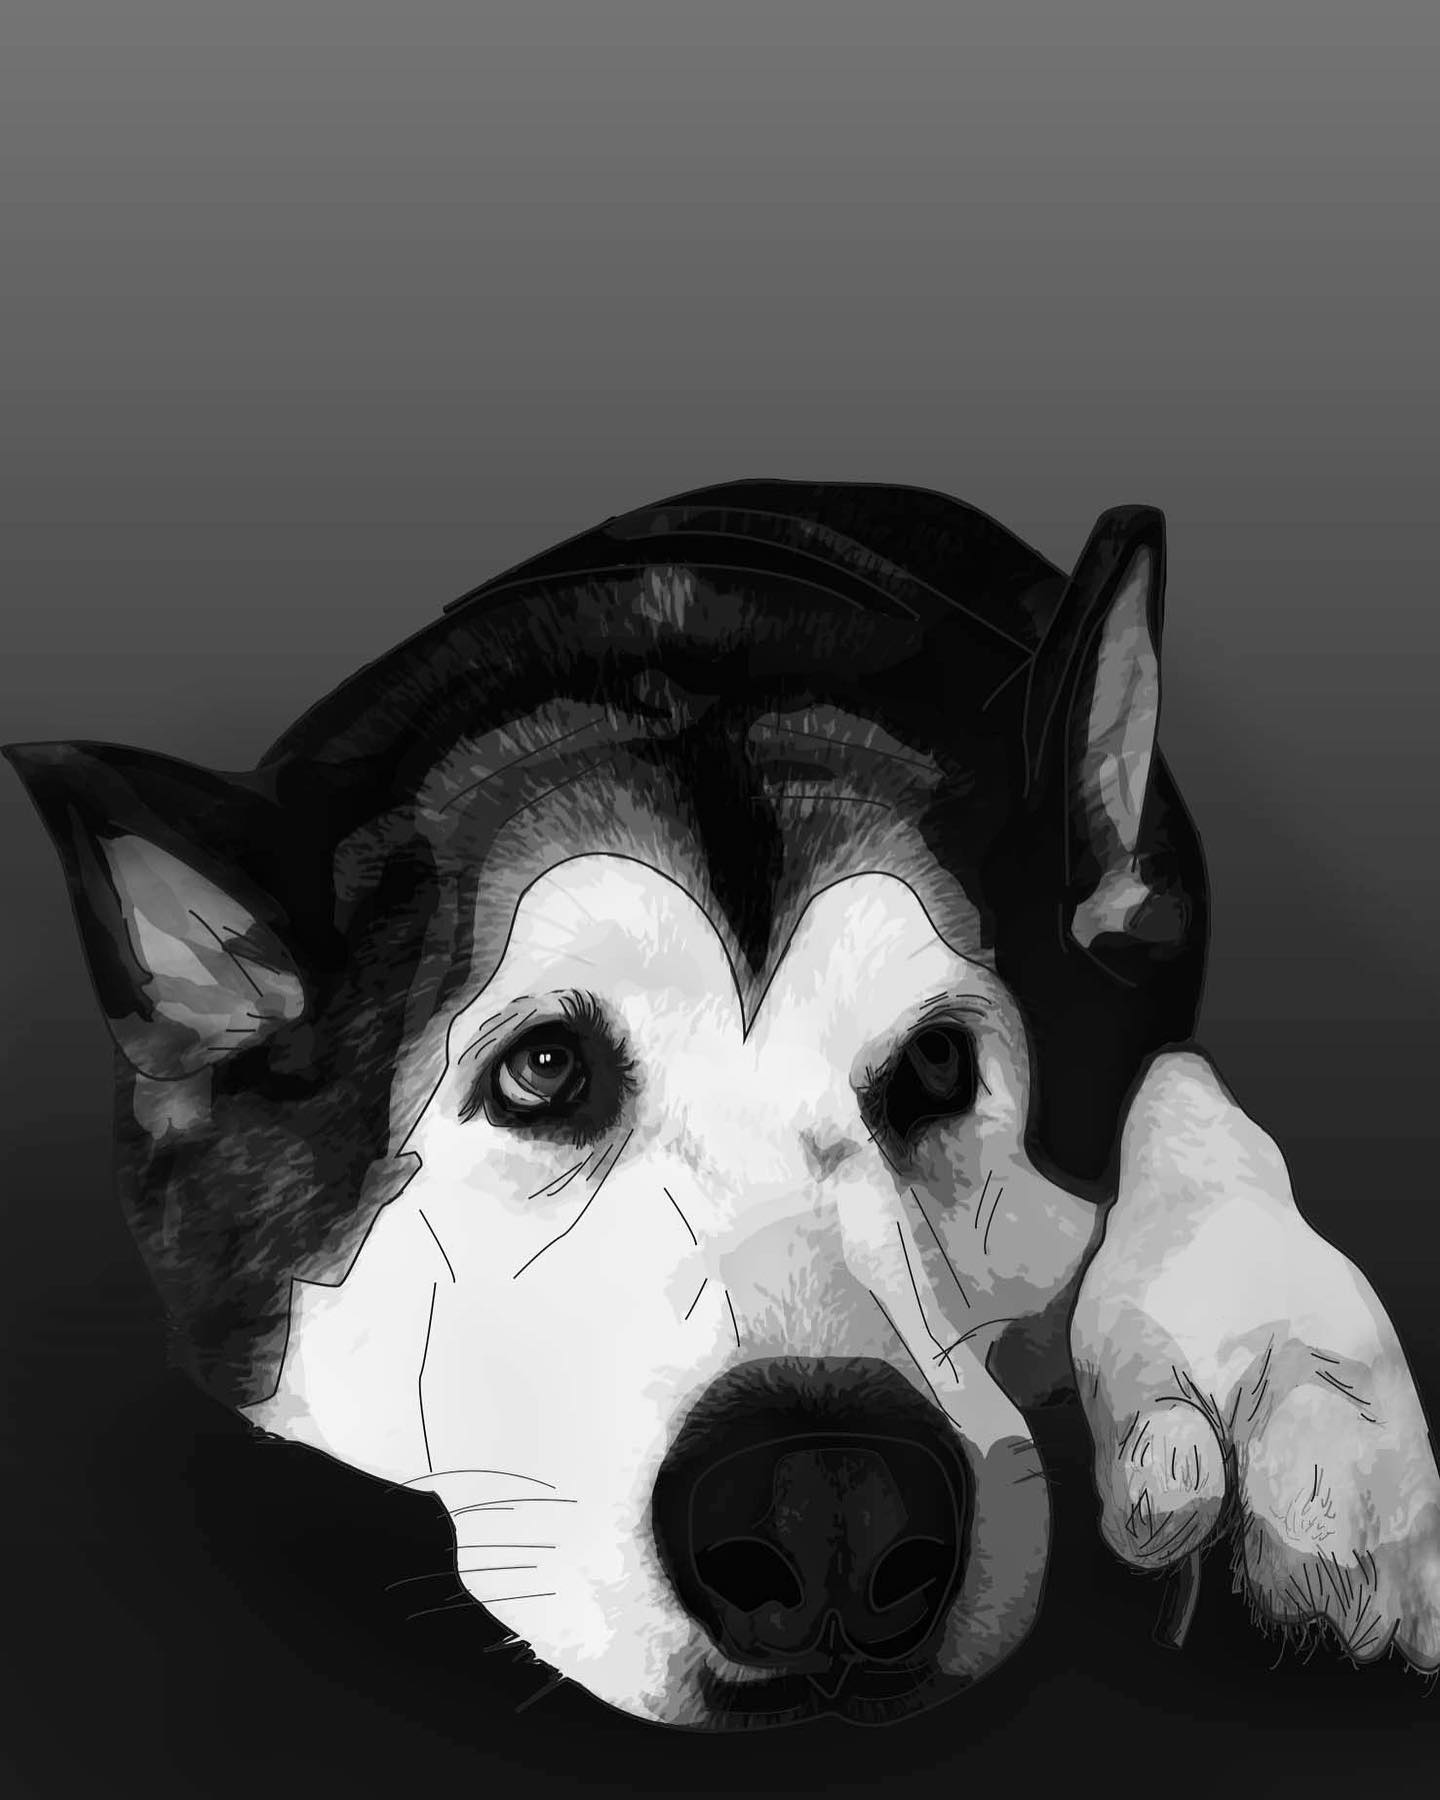 Dog fully shaded.